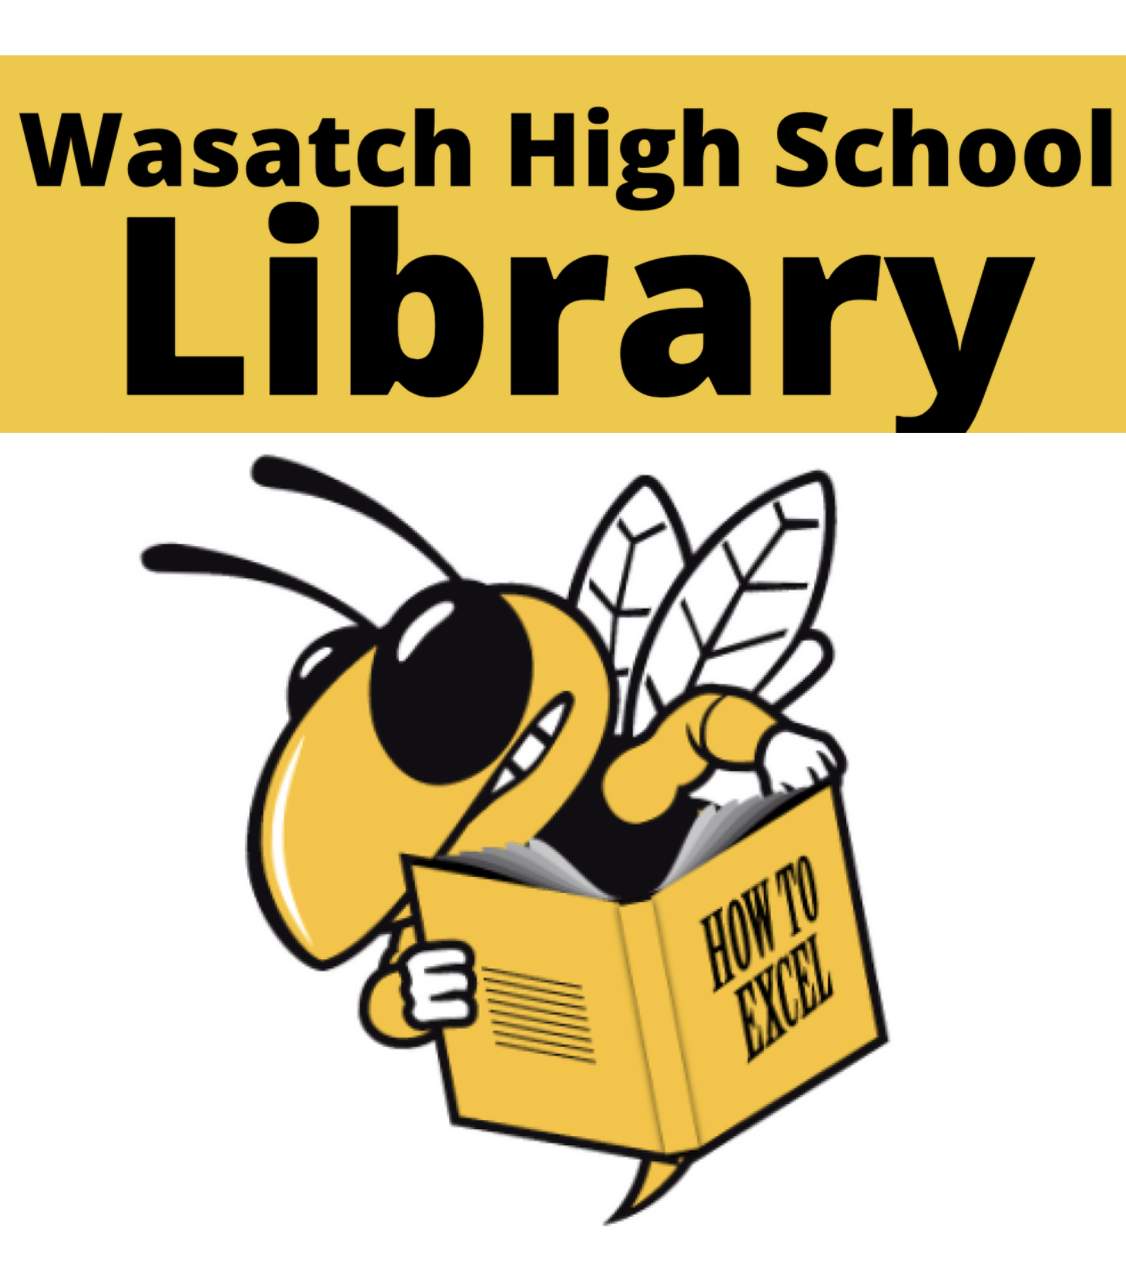 Wasatch High School Library